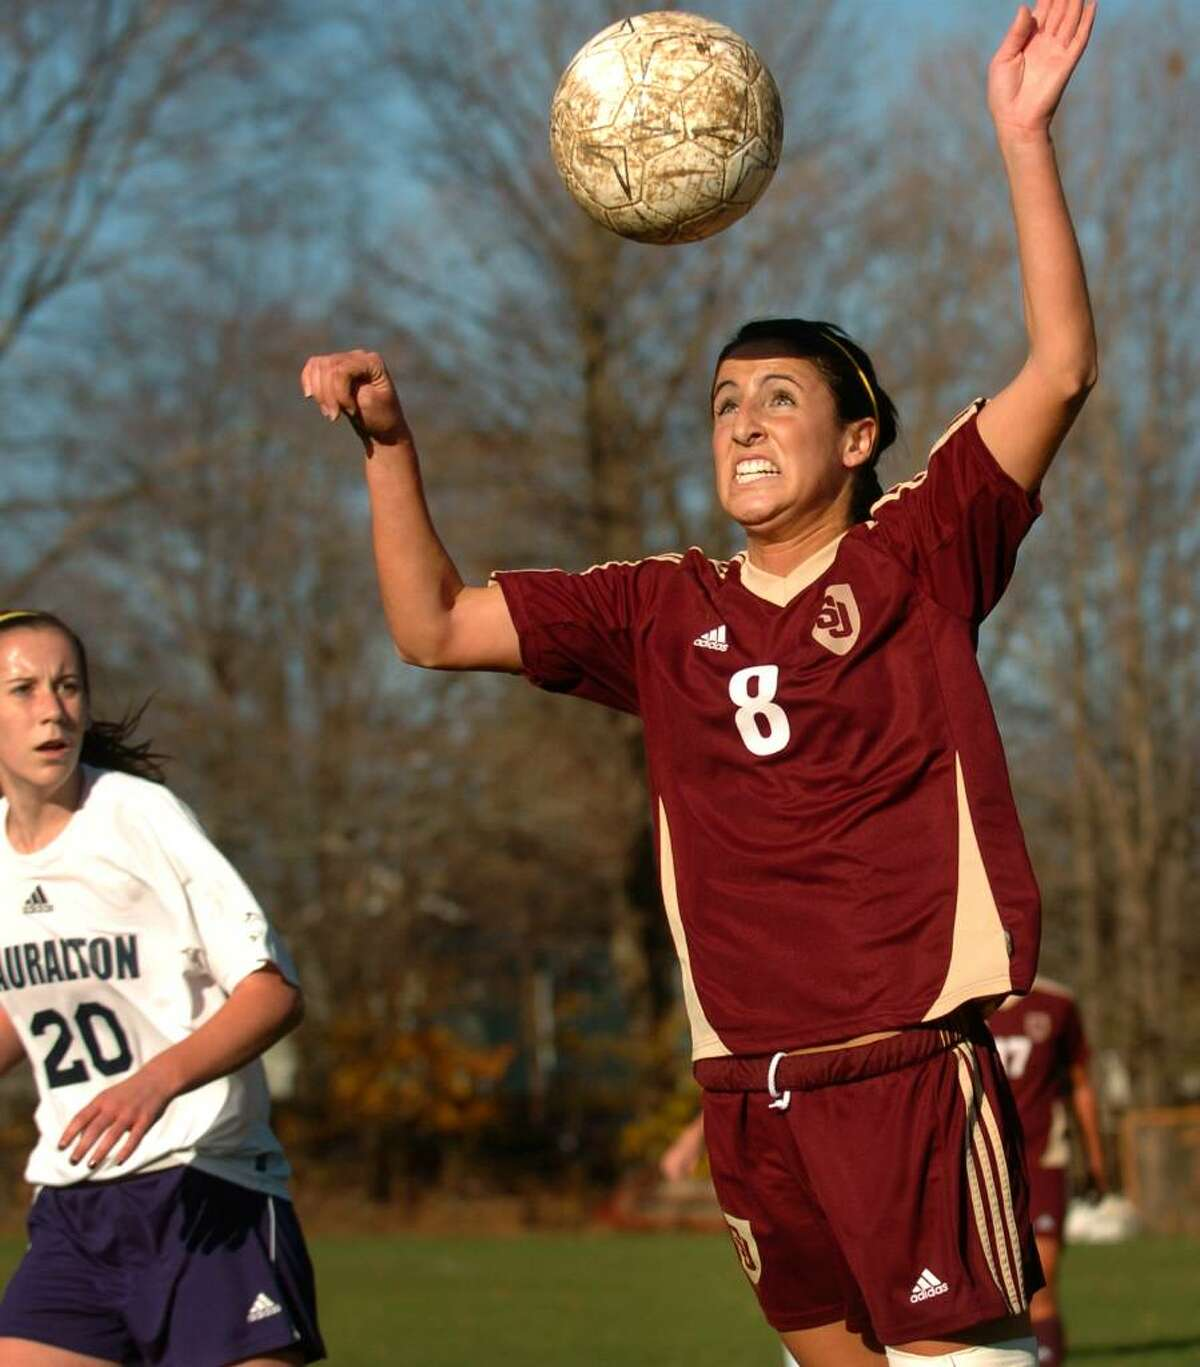 St. Joseph's Jessica Schloth heads the ball as Lauralton Hall's Nicole Peterson looks on during Monday's Class M state tournament game at Lauralton Hall in Milford. St. Joseph won the game 2-0.